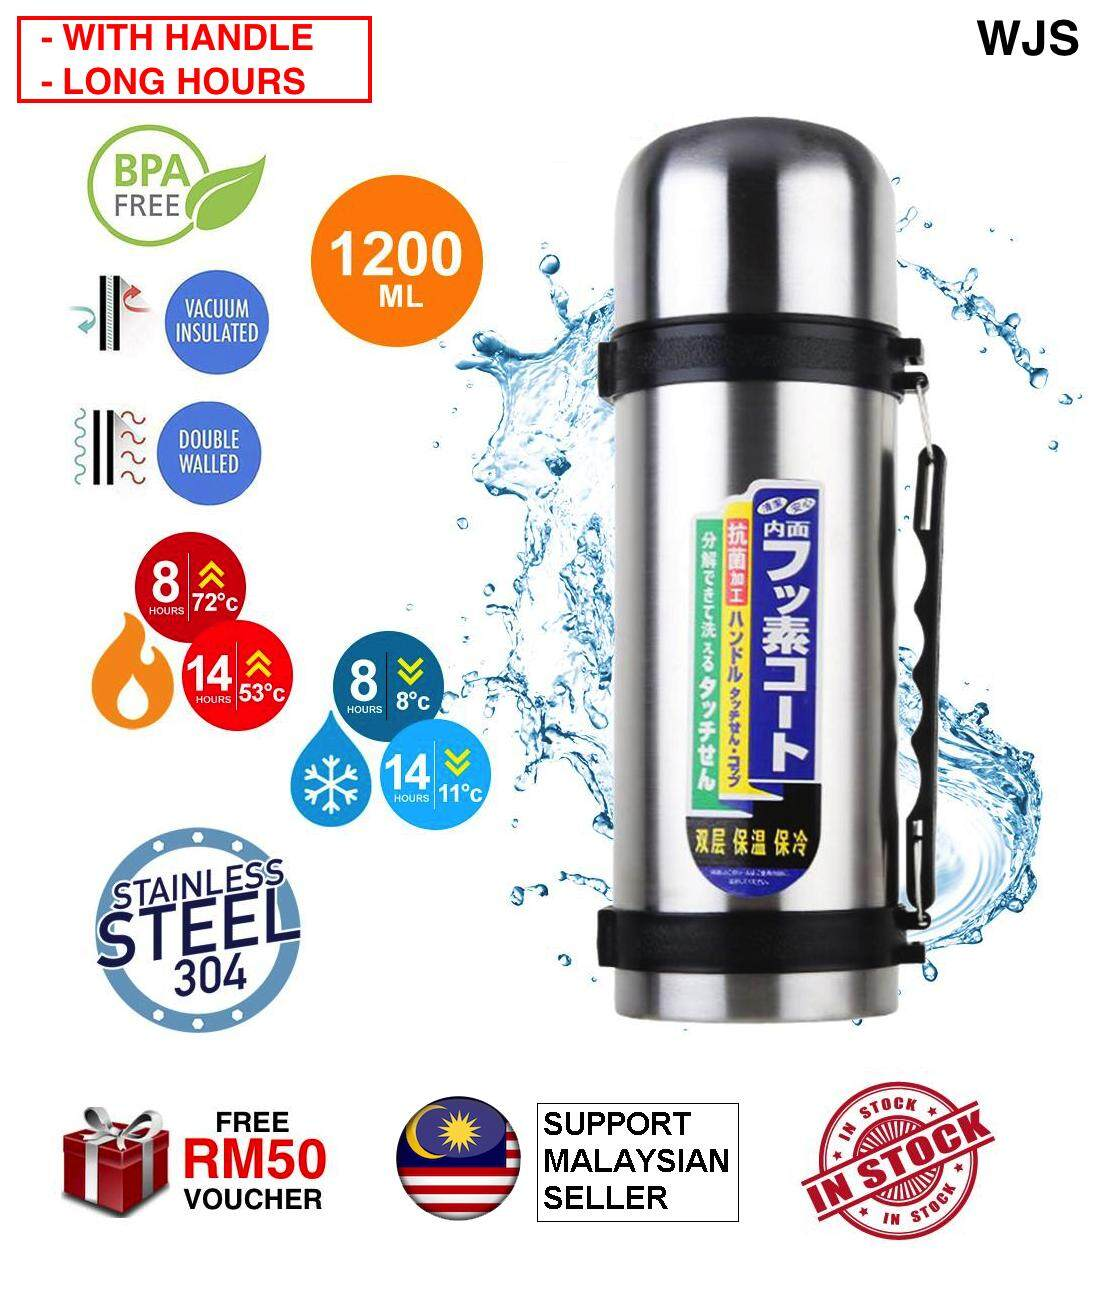 (LARGER & MORE DURABLE) WJS 1.2L 1200ML Full 304 Stainless Steel Flask BPA FREE Double Wall Vacuum Thermos with Carry Handle Portable Water Bottle Container Thermo Flask for Hot and Cold Thermos Tumbler Tahan Panas SILVER [FREE RM 50 VOUCHER]